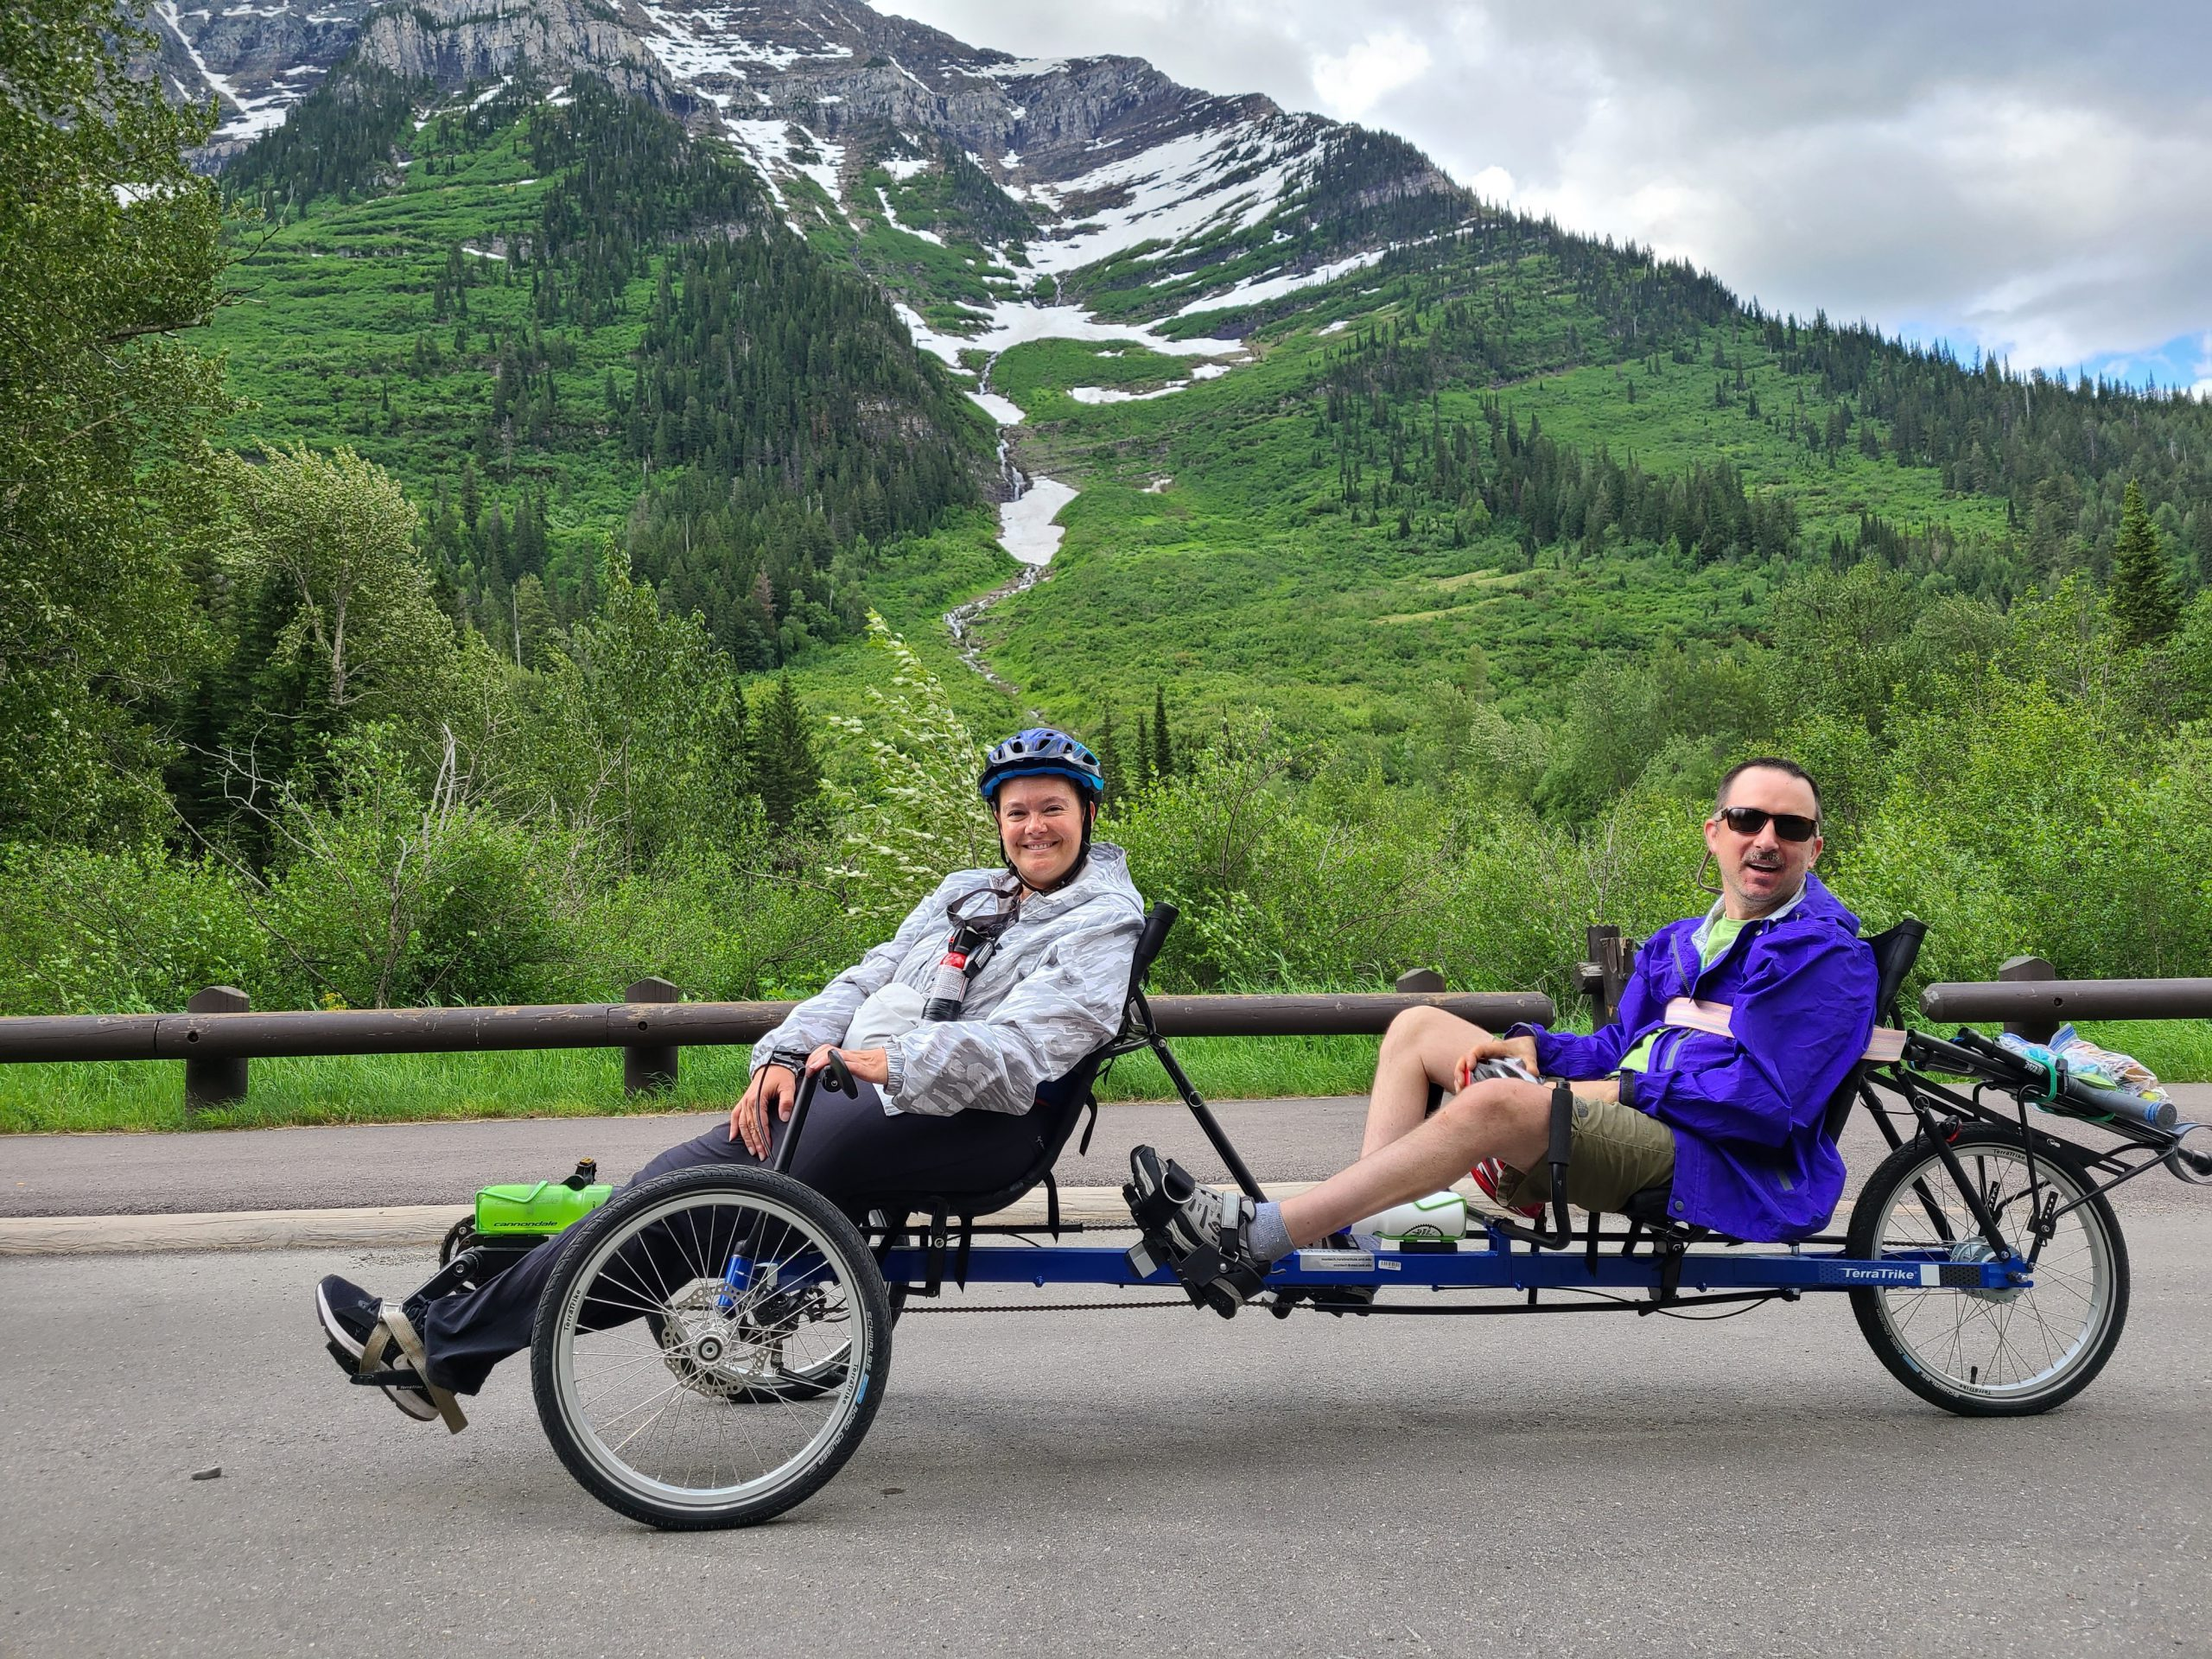 Peter and Sherene on the trike, a magnificent green, snow-capped mountain behind them